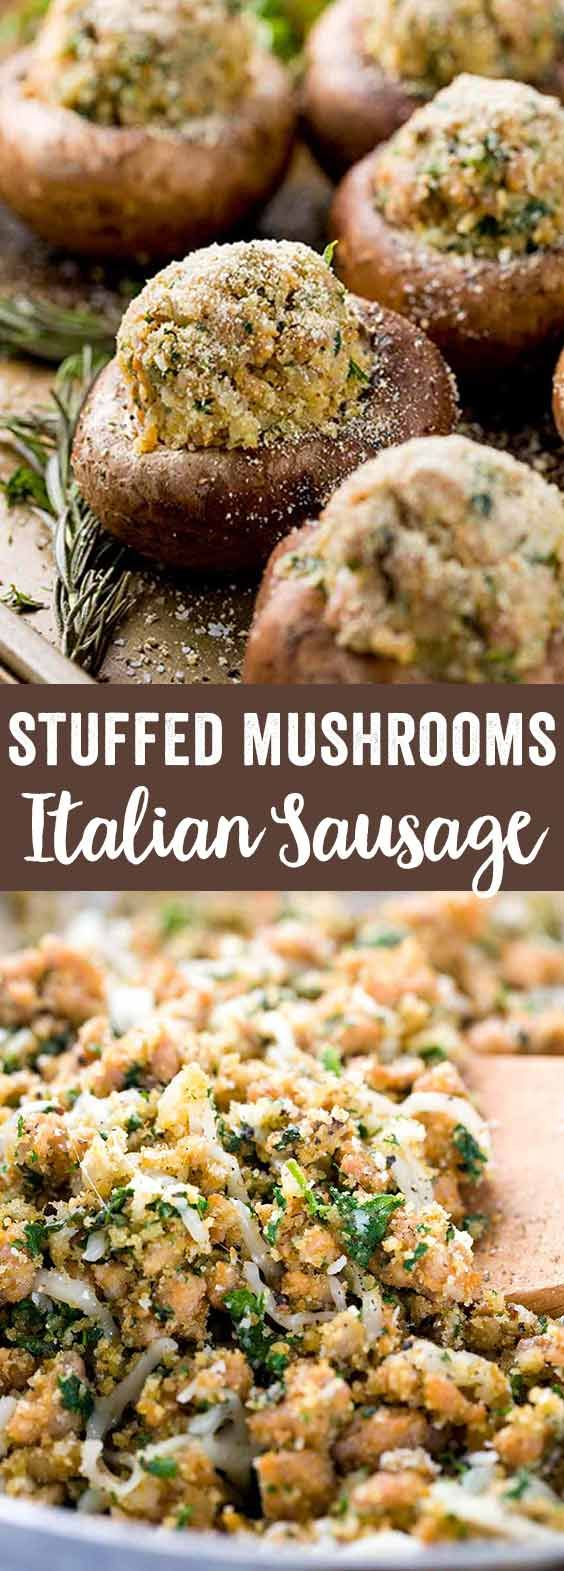 Stuffed mushrooms filled with herbs and Italian sausage